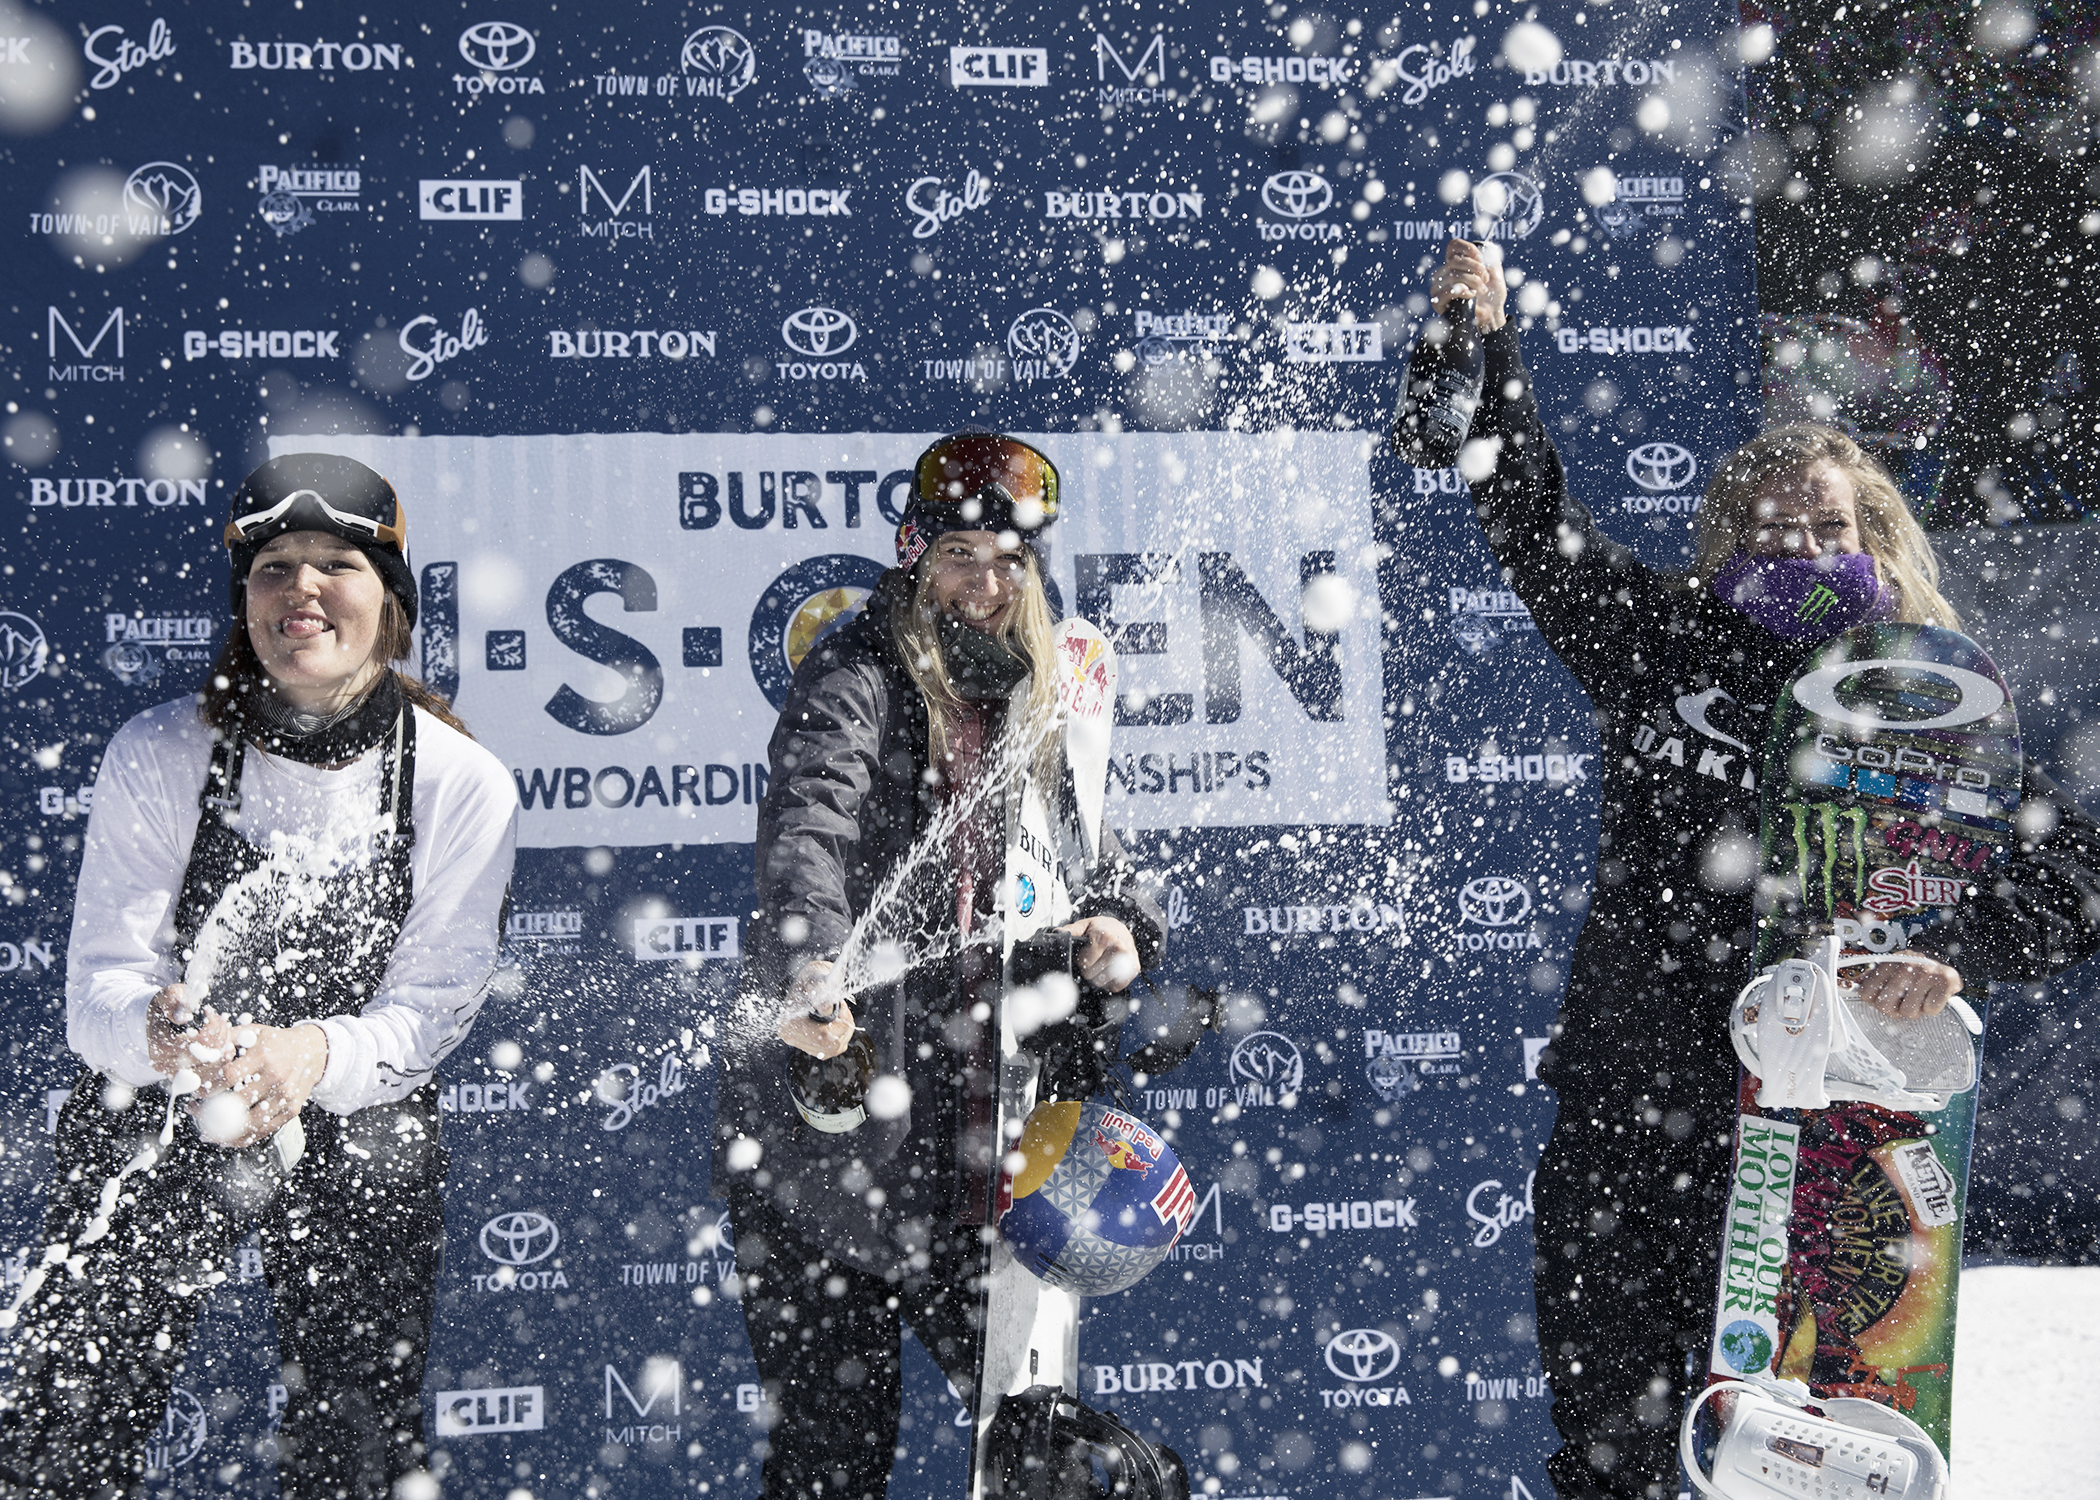 Anna Gasser and Mark McMorris Win 2017 Burton U.S. Open Slopestyle Titles